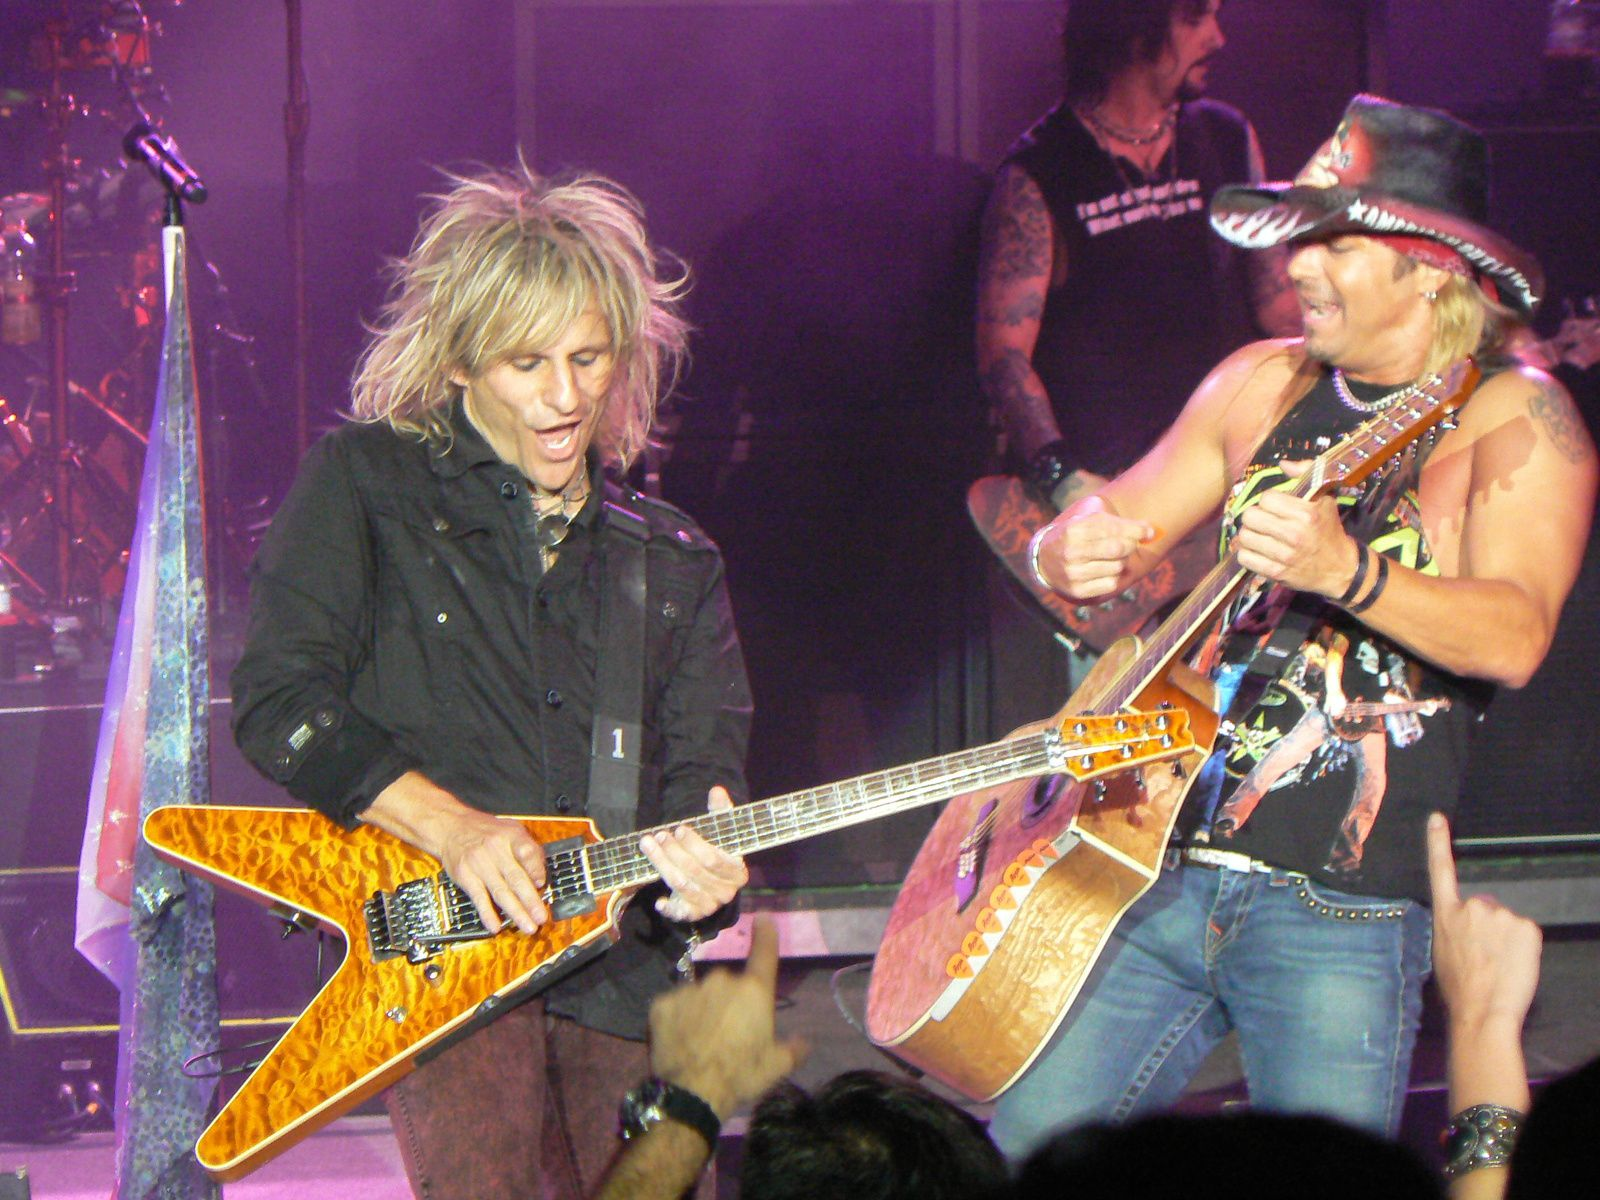 C.C. DeVille and Bret Michael